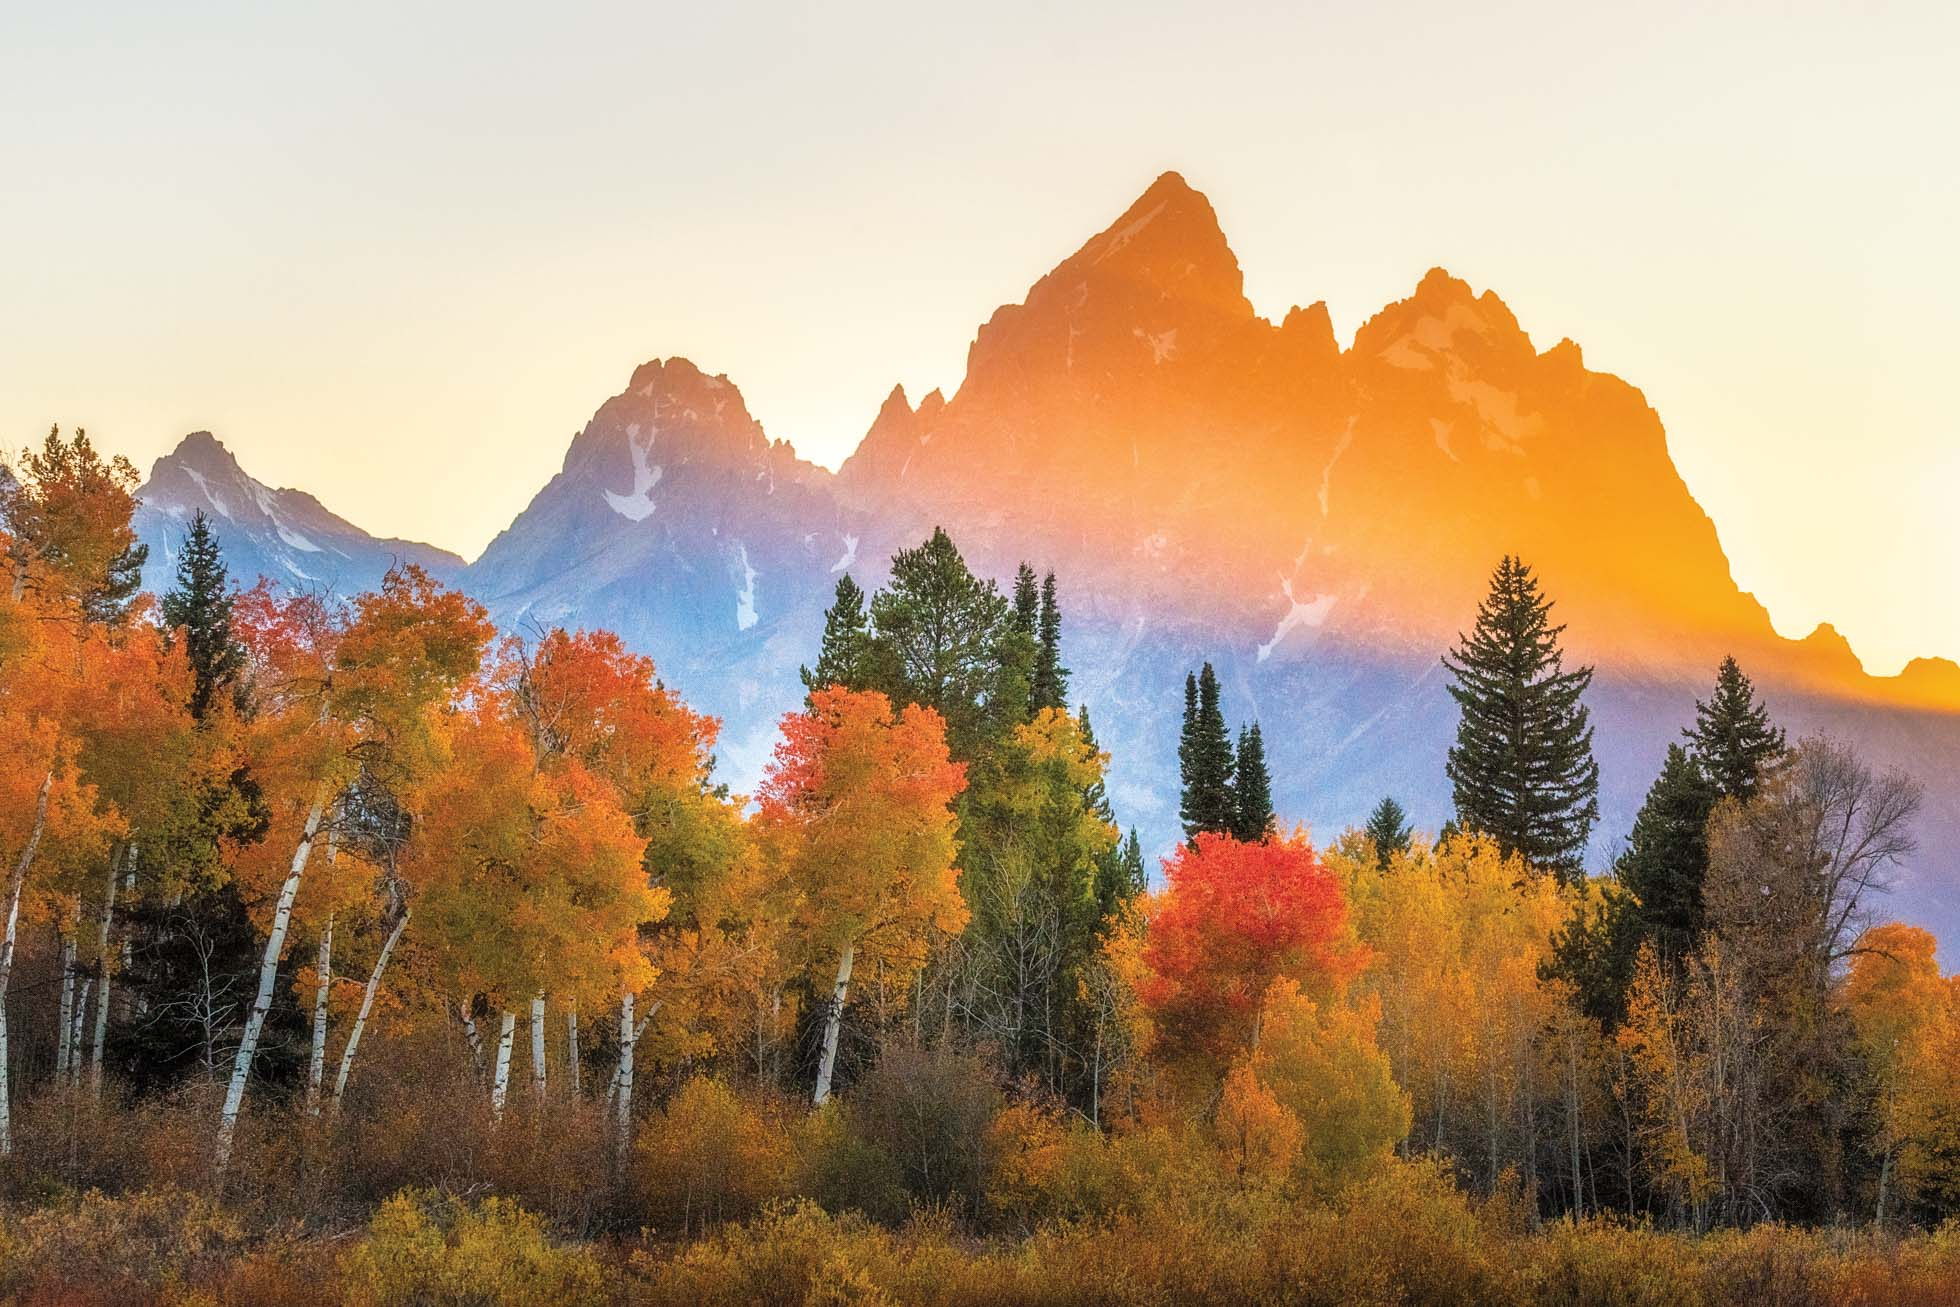 150mm  As the sunset's golden light hit the Grand Teton, I captured this at 150mm to isolate the light on the Grand complimented by the colorful autumn foliage in the foreground.